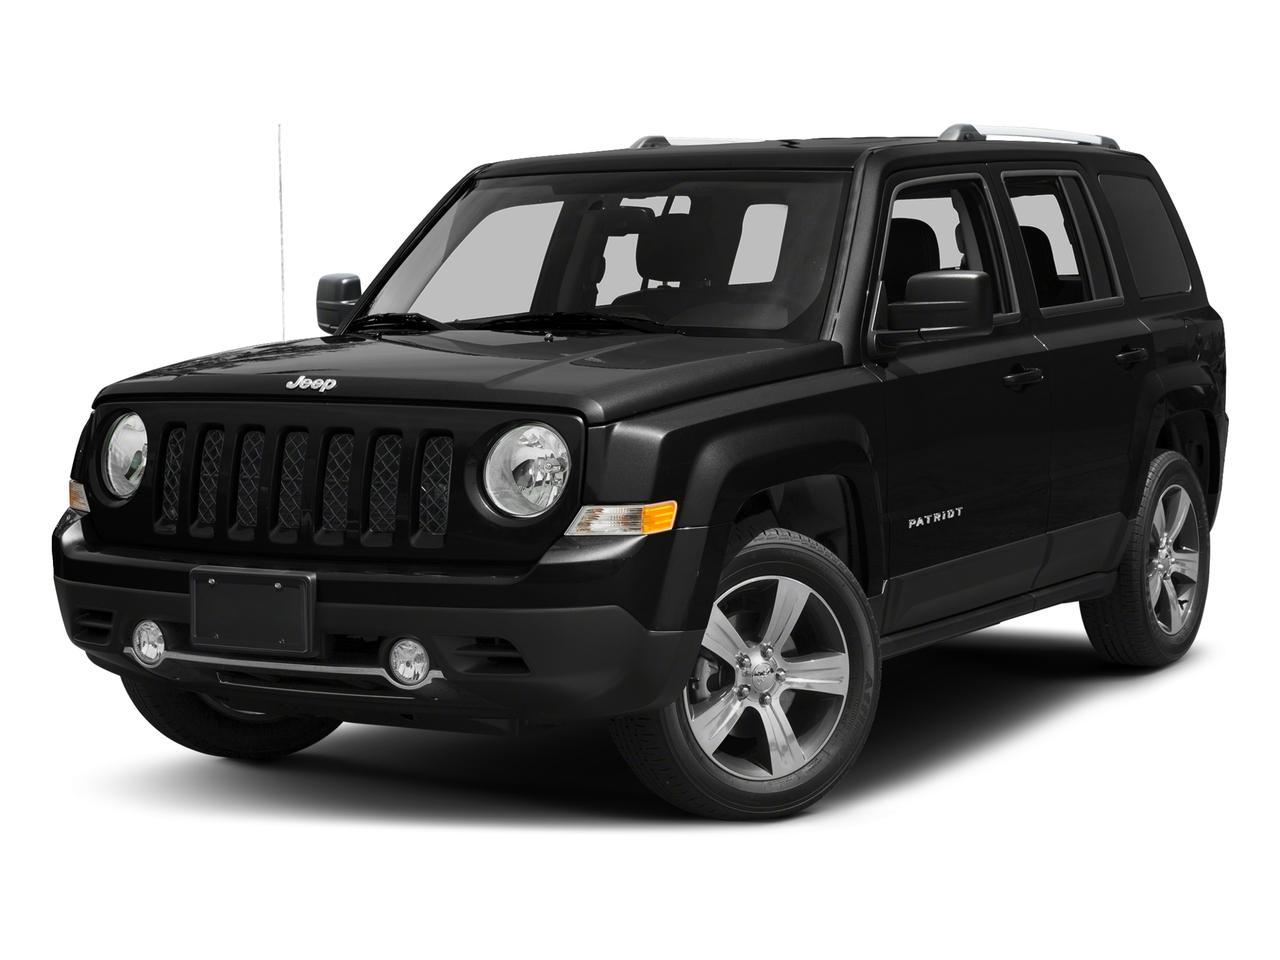 2017 Jeep Patriot Vehicle Photo in Colorado Springs, CO 80920